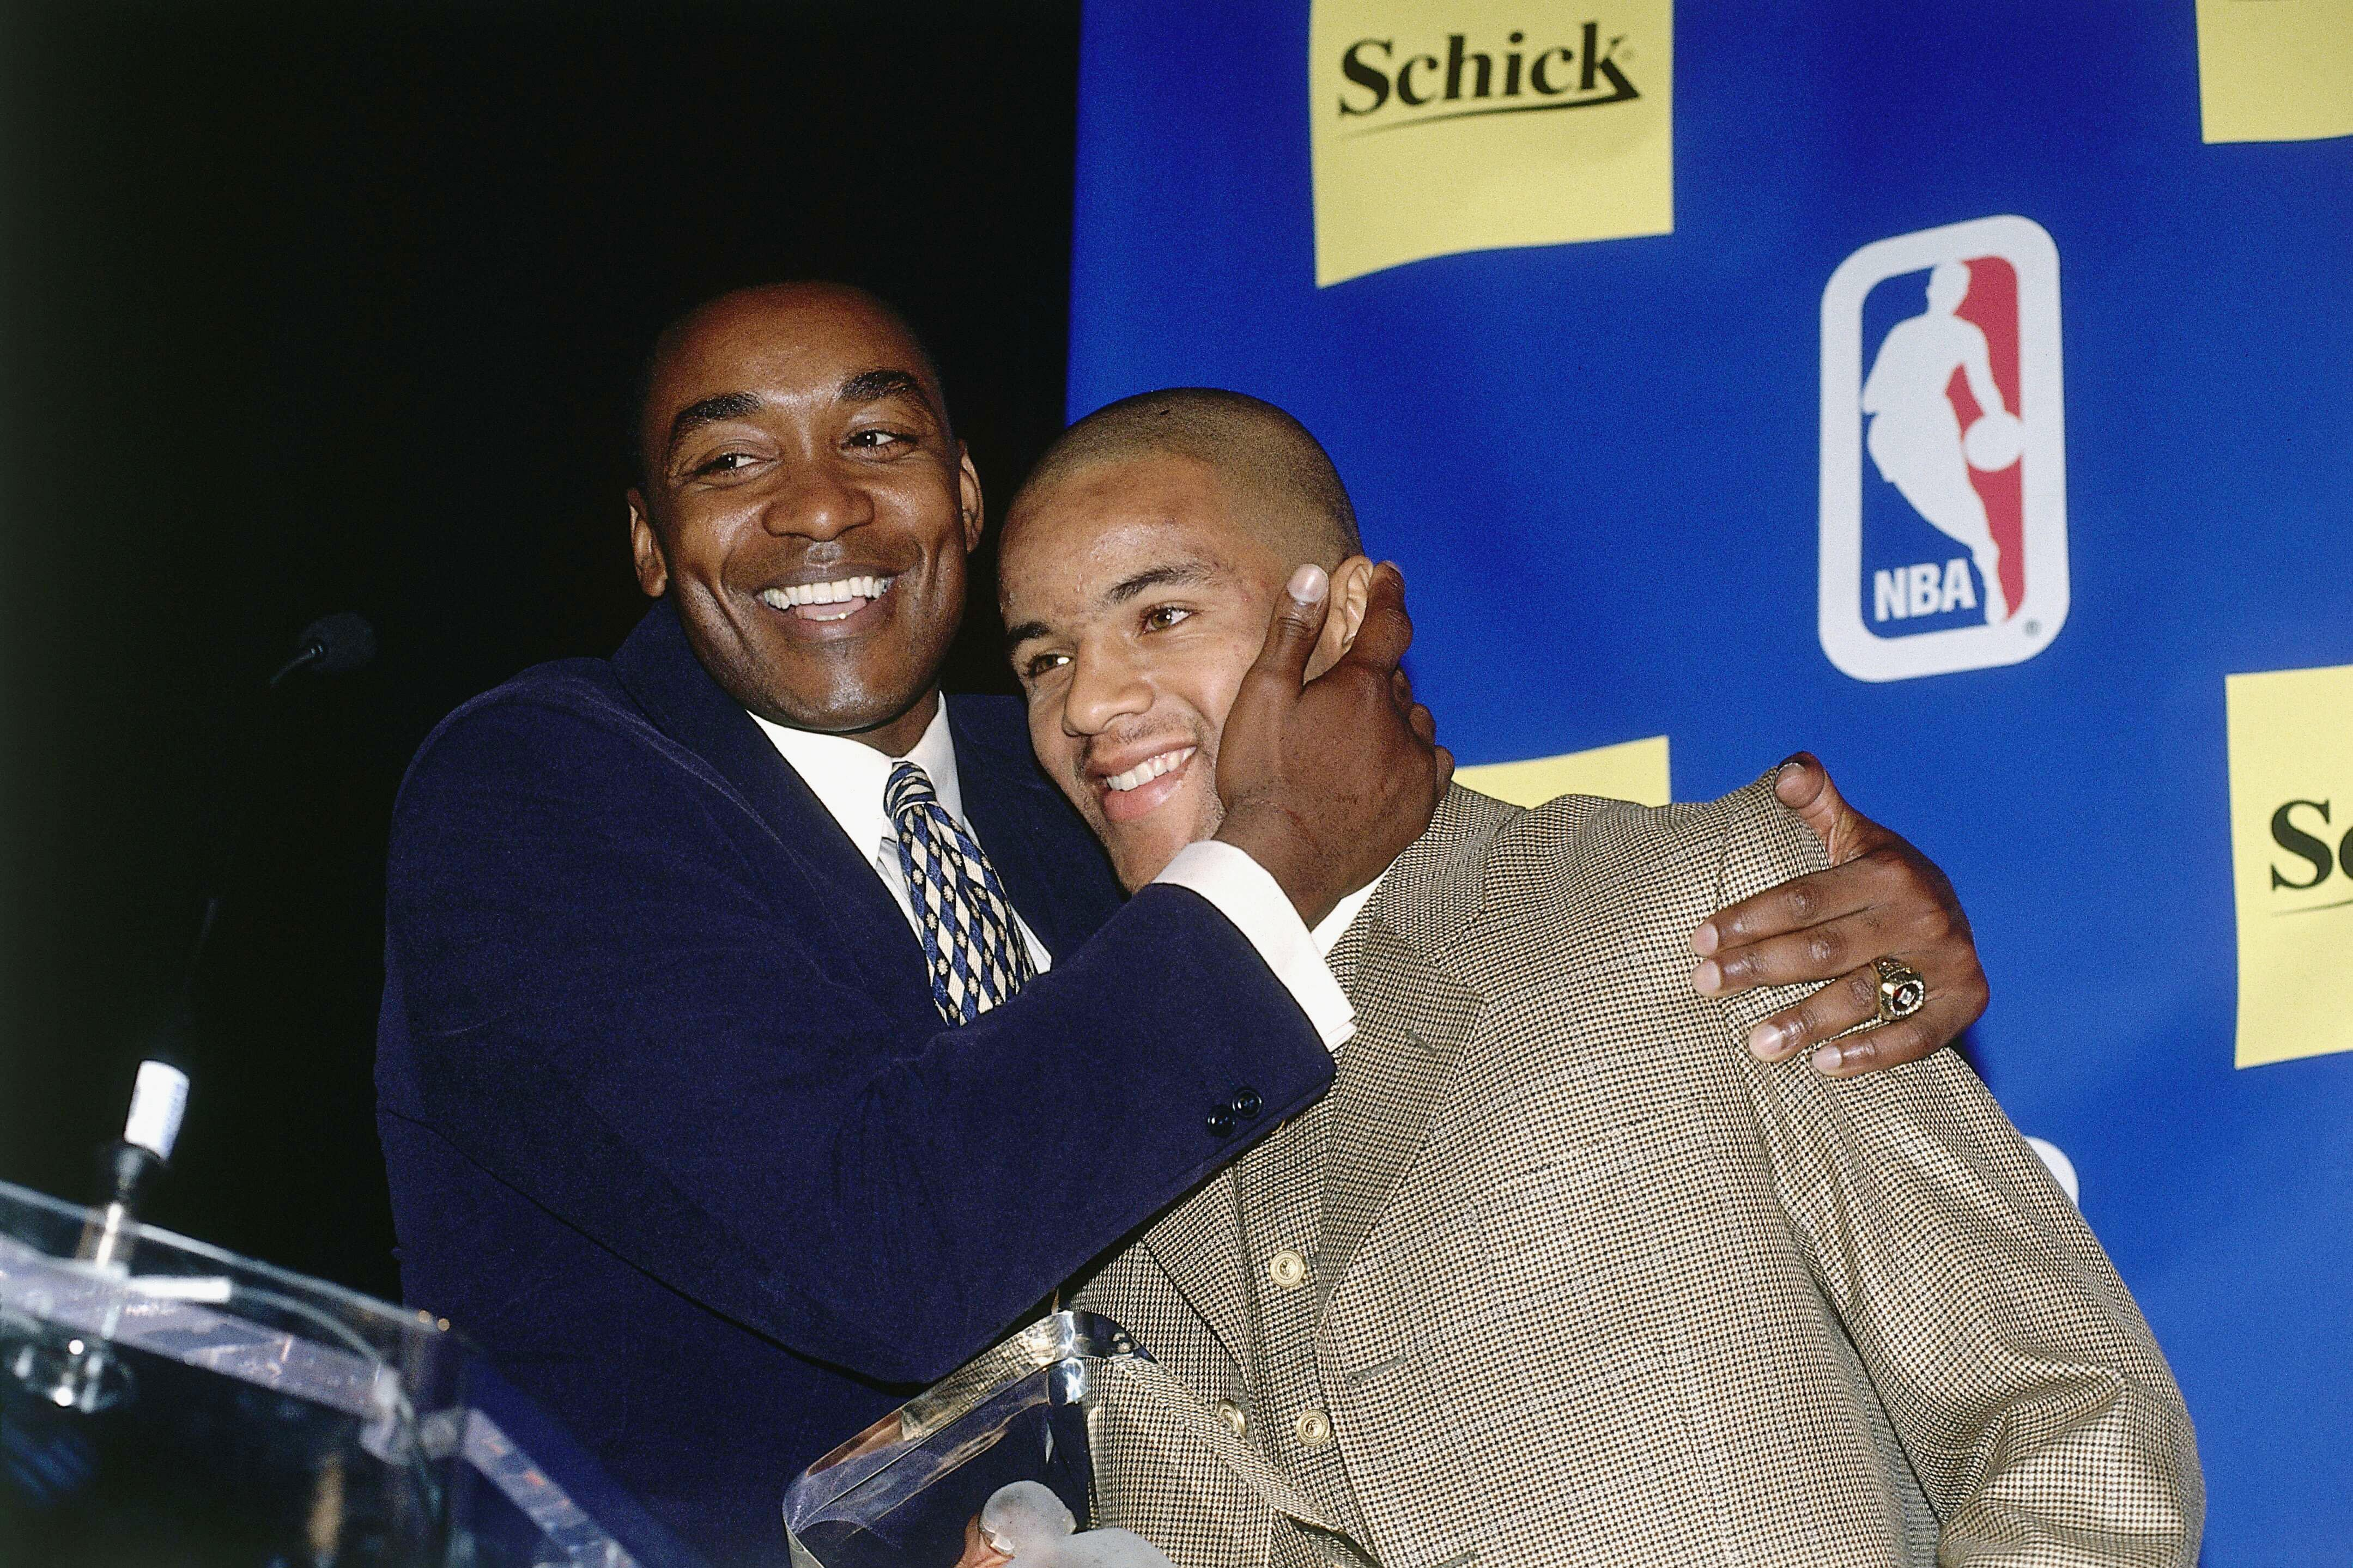 TORONTO, CAN - MAY 15:  Damon Stoudamire of the Toronto Raptors poses for a portrait with Isiah Thomas during the Rookie of the Year press conference  on May 15, 1996 in Toronto, Canada.   NOTE TO USER:  User expressly acknowledges and agrees that, by downloading and/or using this Photograph, User is consenting to the terms and conditions of the Getty Images License Agreement. Mandatory Copyright Notice:  Copyright 1996 NBAE (Photo By Ron Turenne/NBAE via Getty Images.